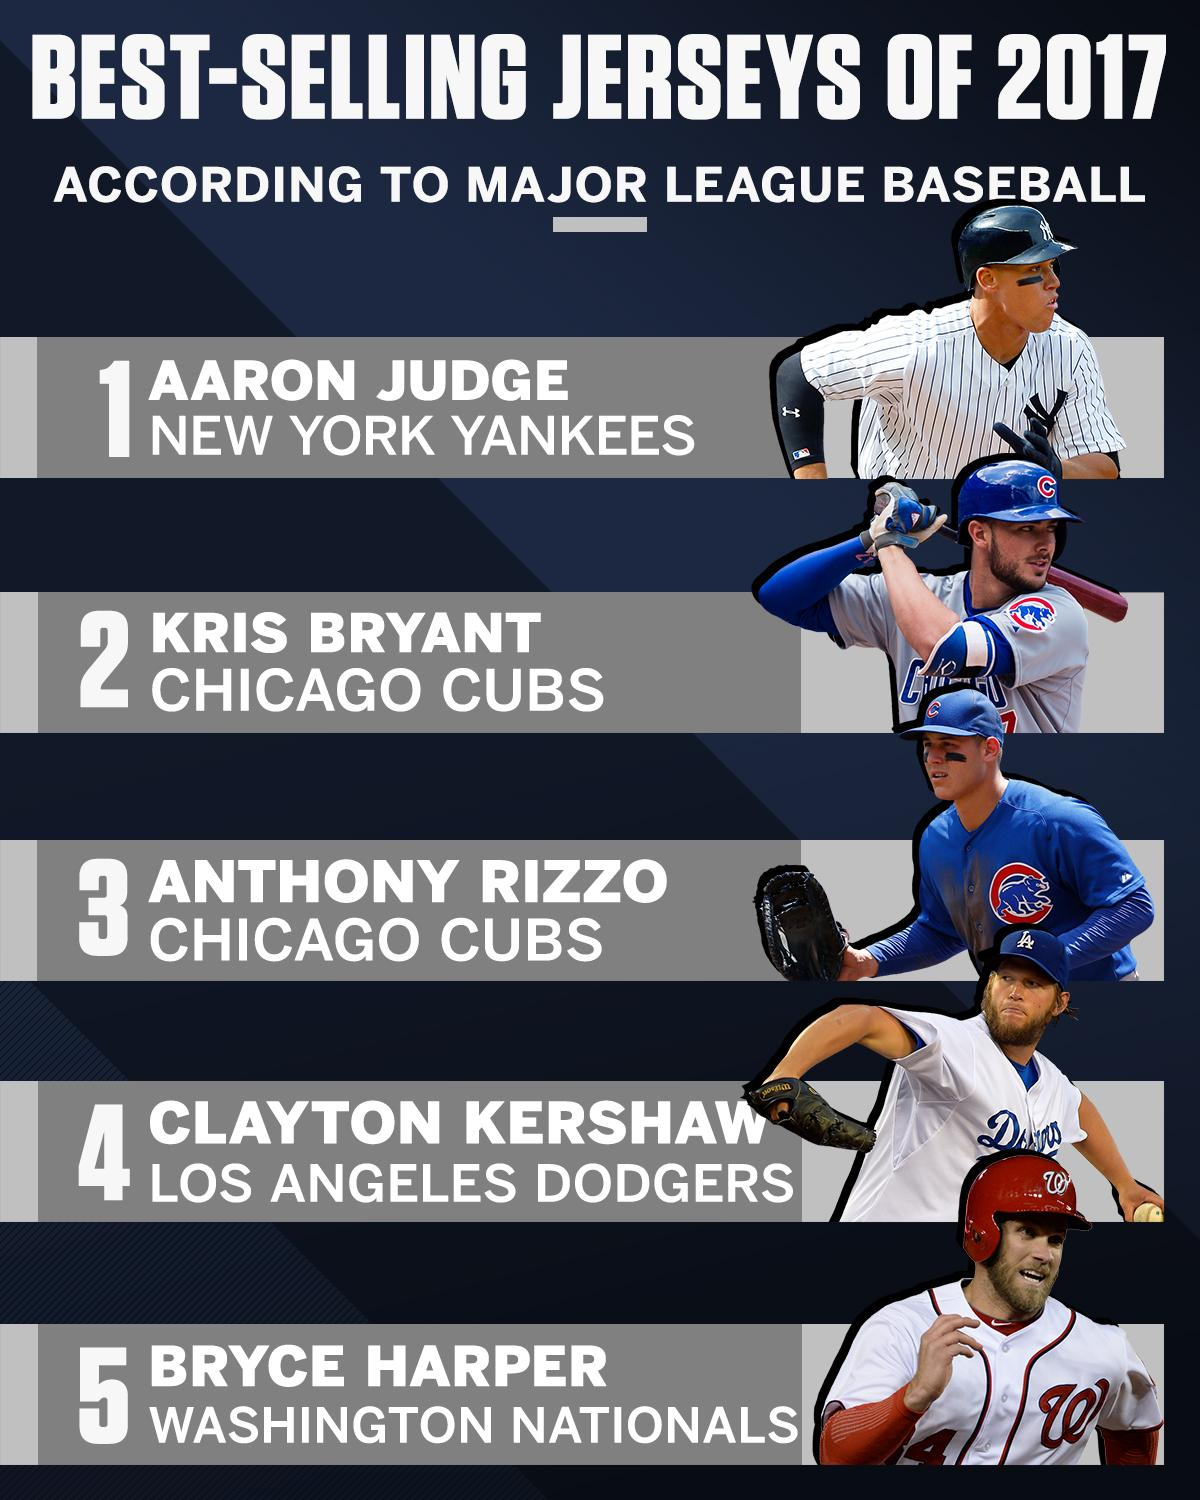 Aaron Judge tops MLB jersey sales with the best-selling rookie jersey ever. https://t.co/GyY5AMmMDU